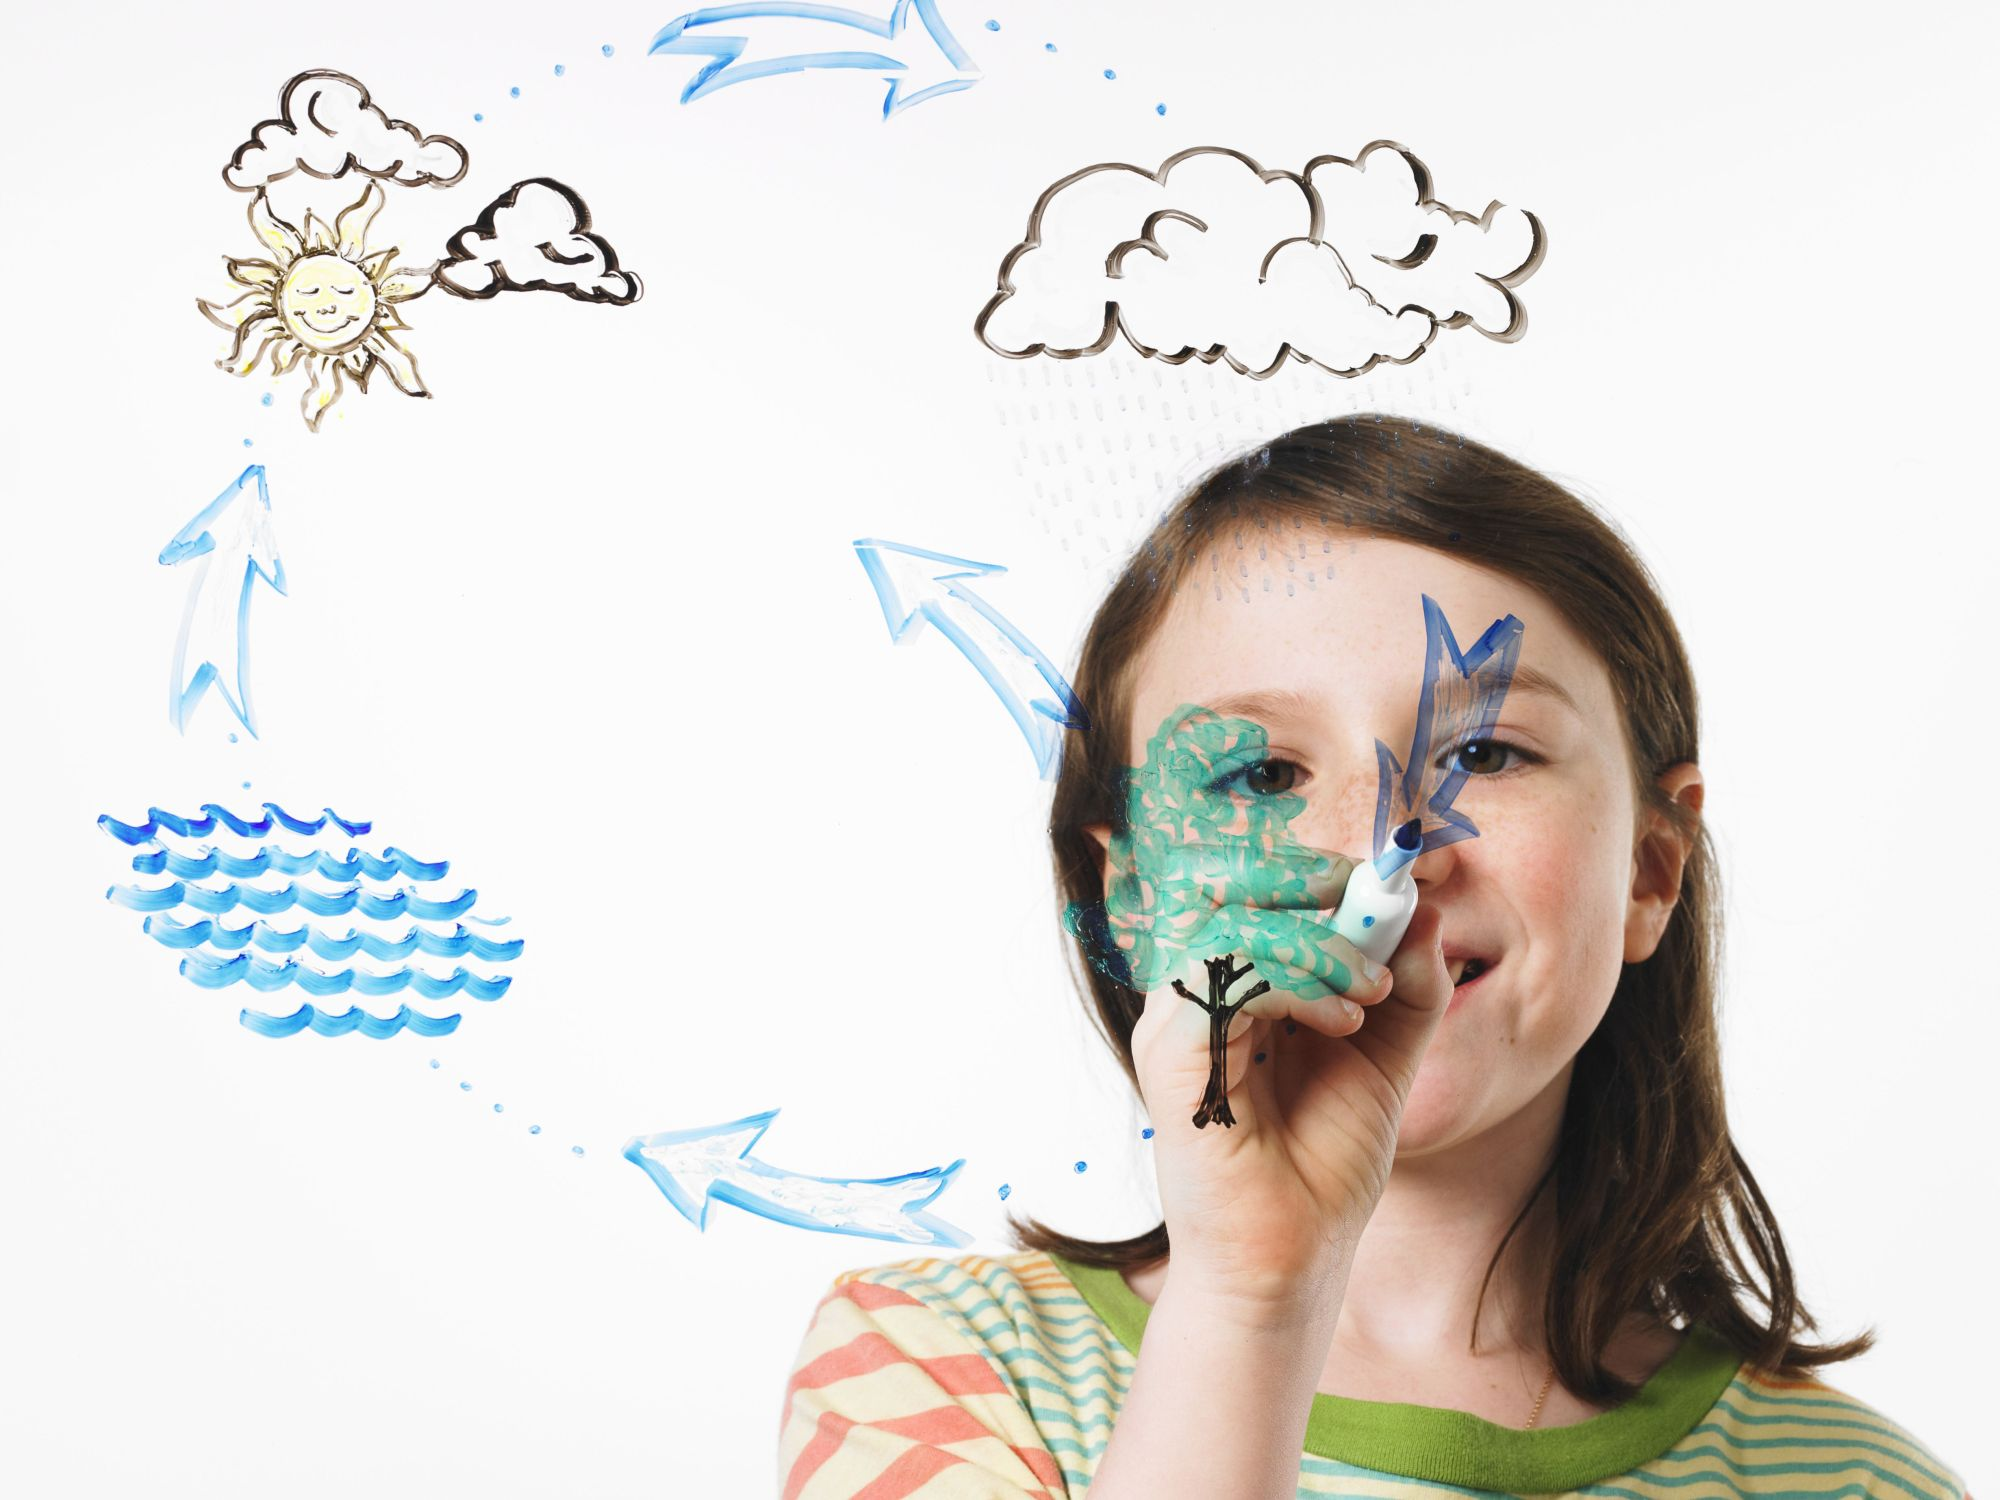 hight resolution of a young girl drawing the water evaporation cycle on a clear see through surface with a